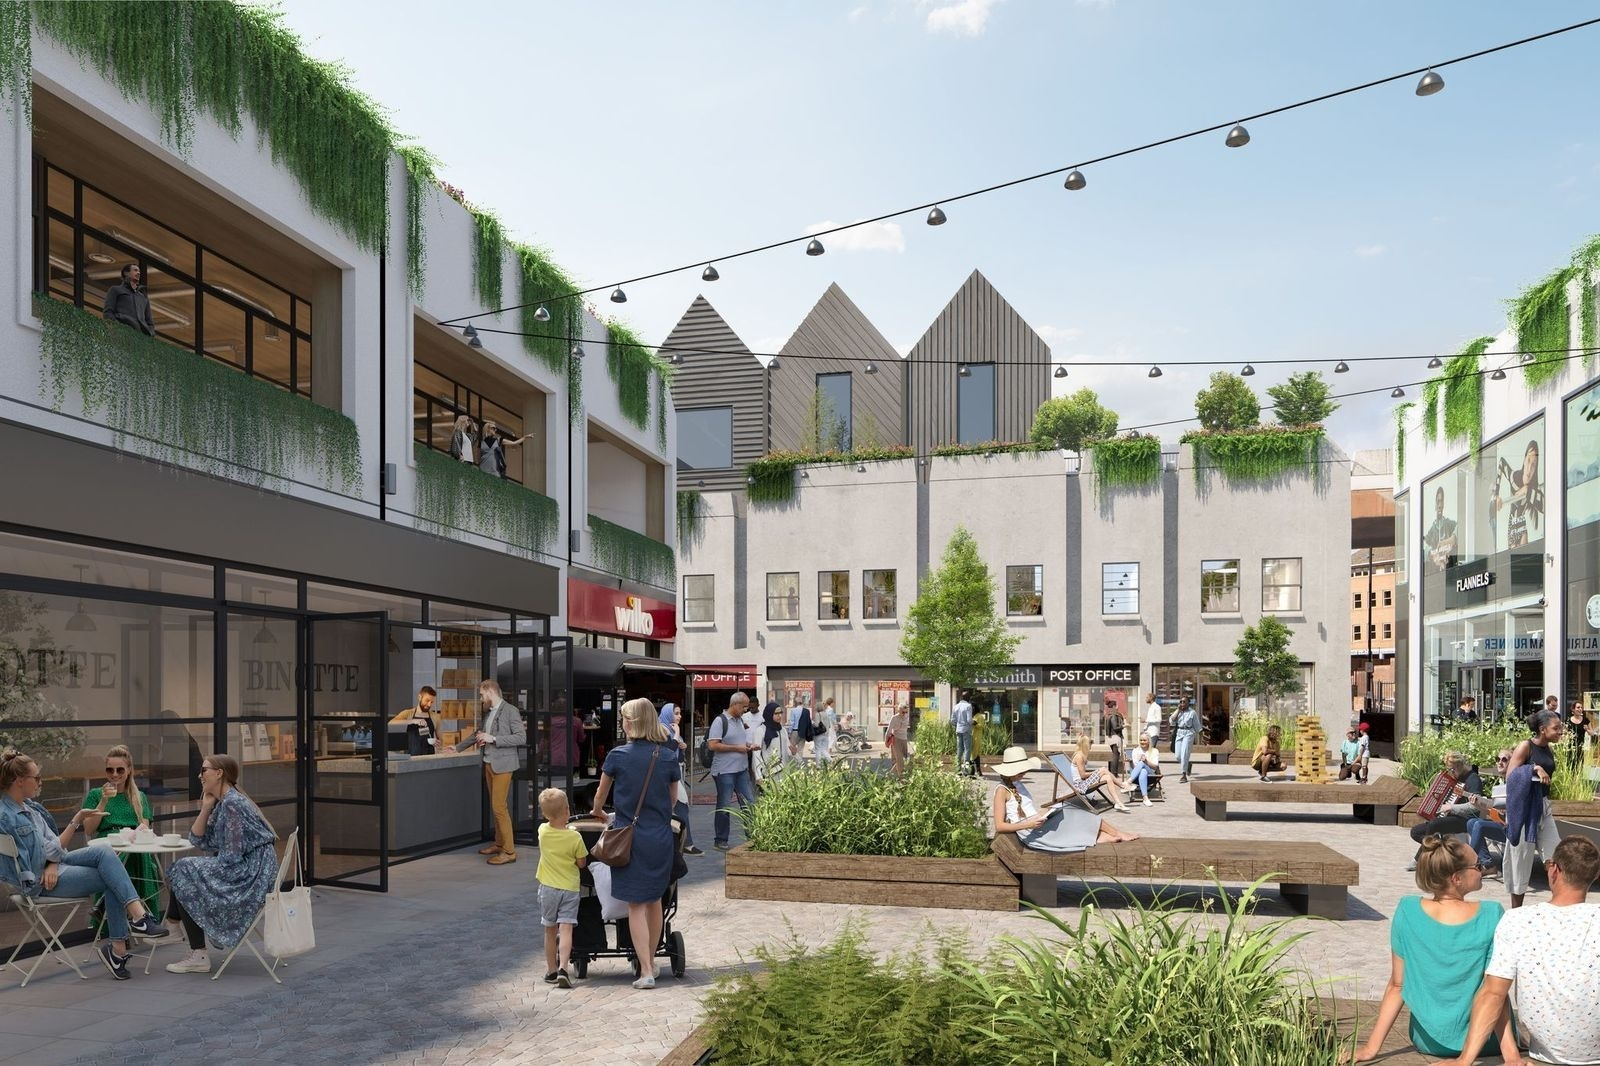 The new plans for Altrincham town centre